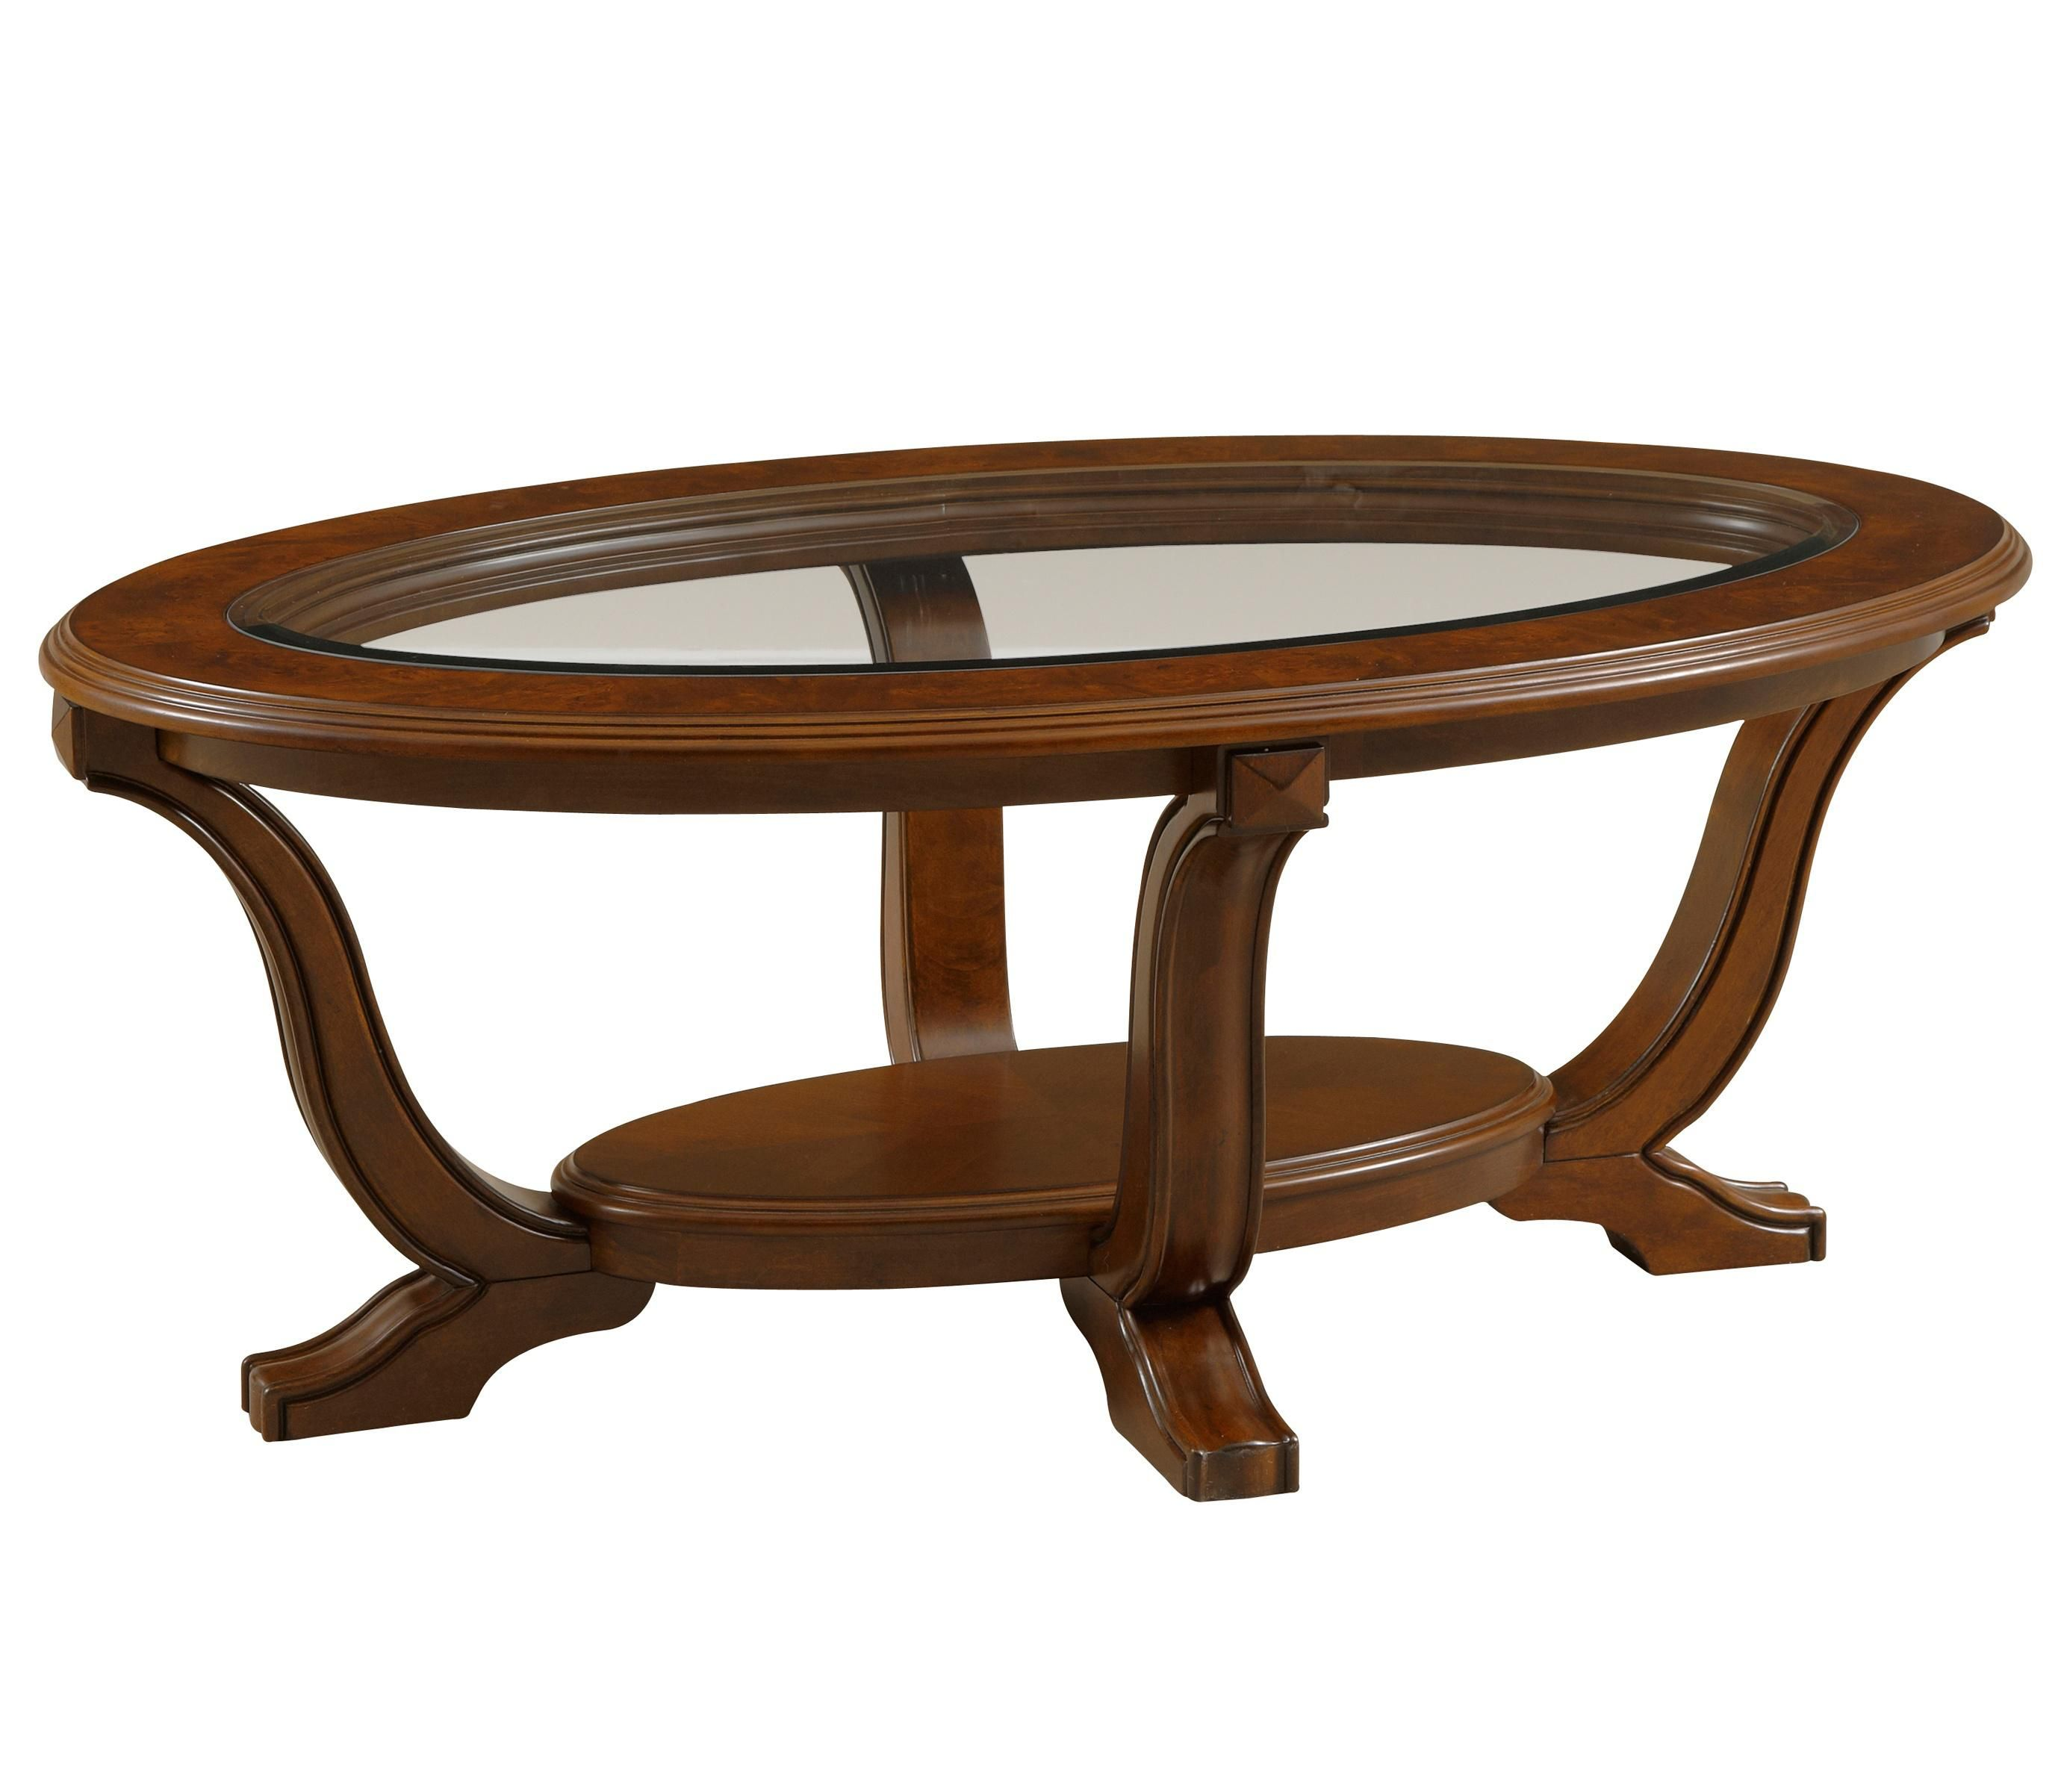 Lana Oval Cocktail Table By Broyhill Furniture Coffee Table Oval Coffee Tables Coffee Table Setting [ 2400 x 2760 Pixel ]